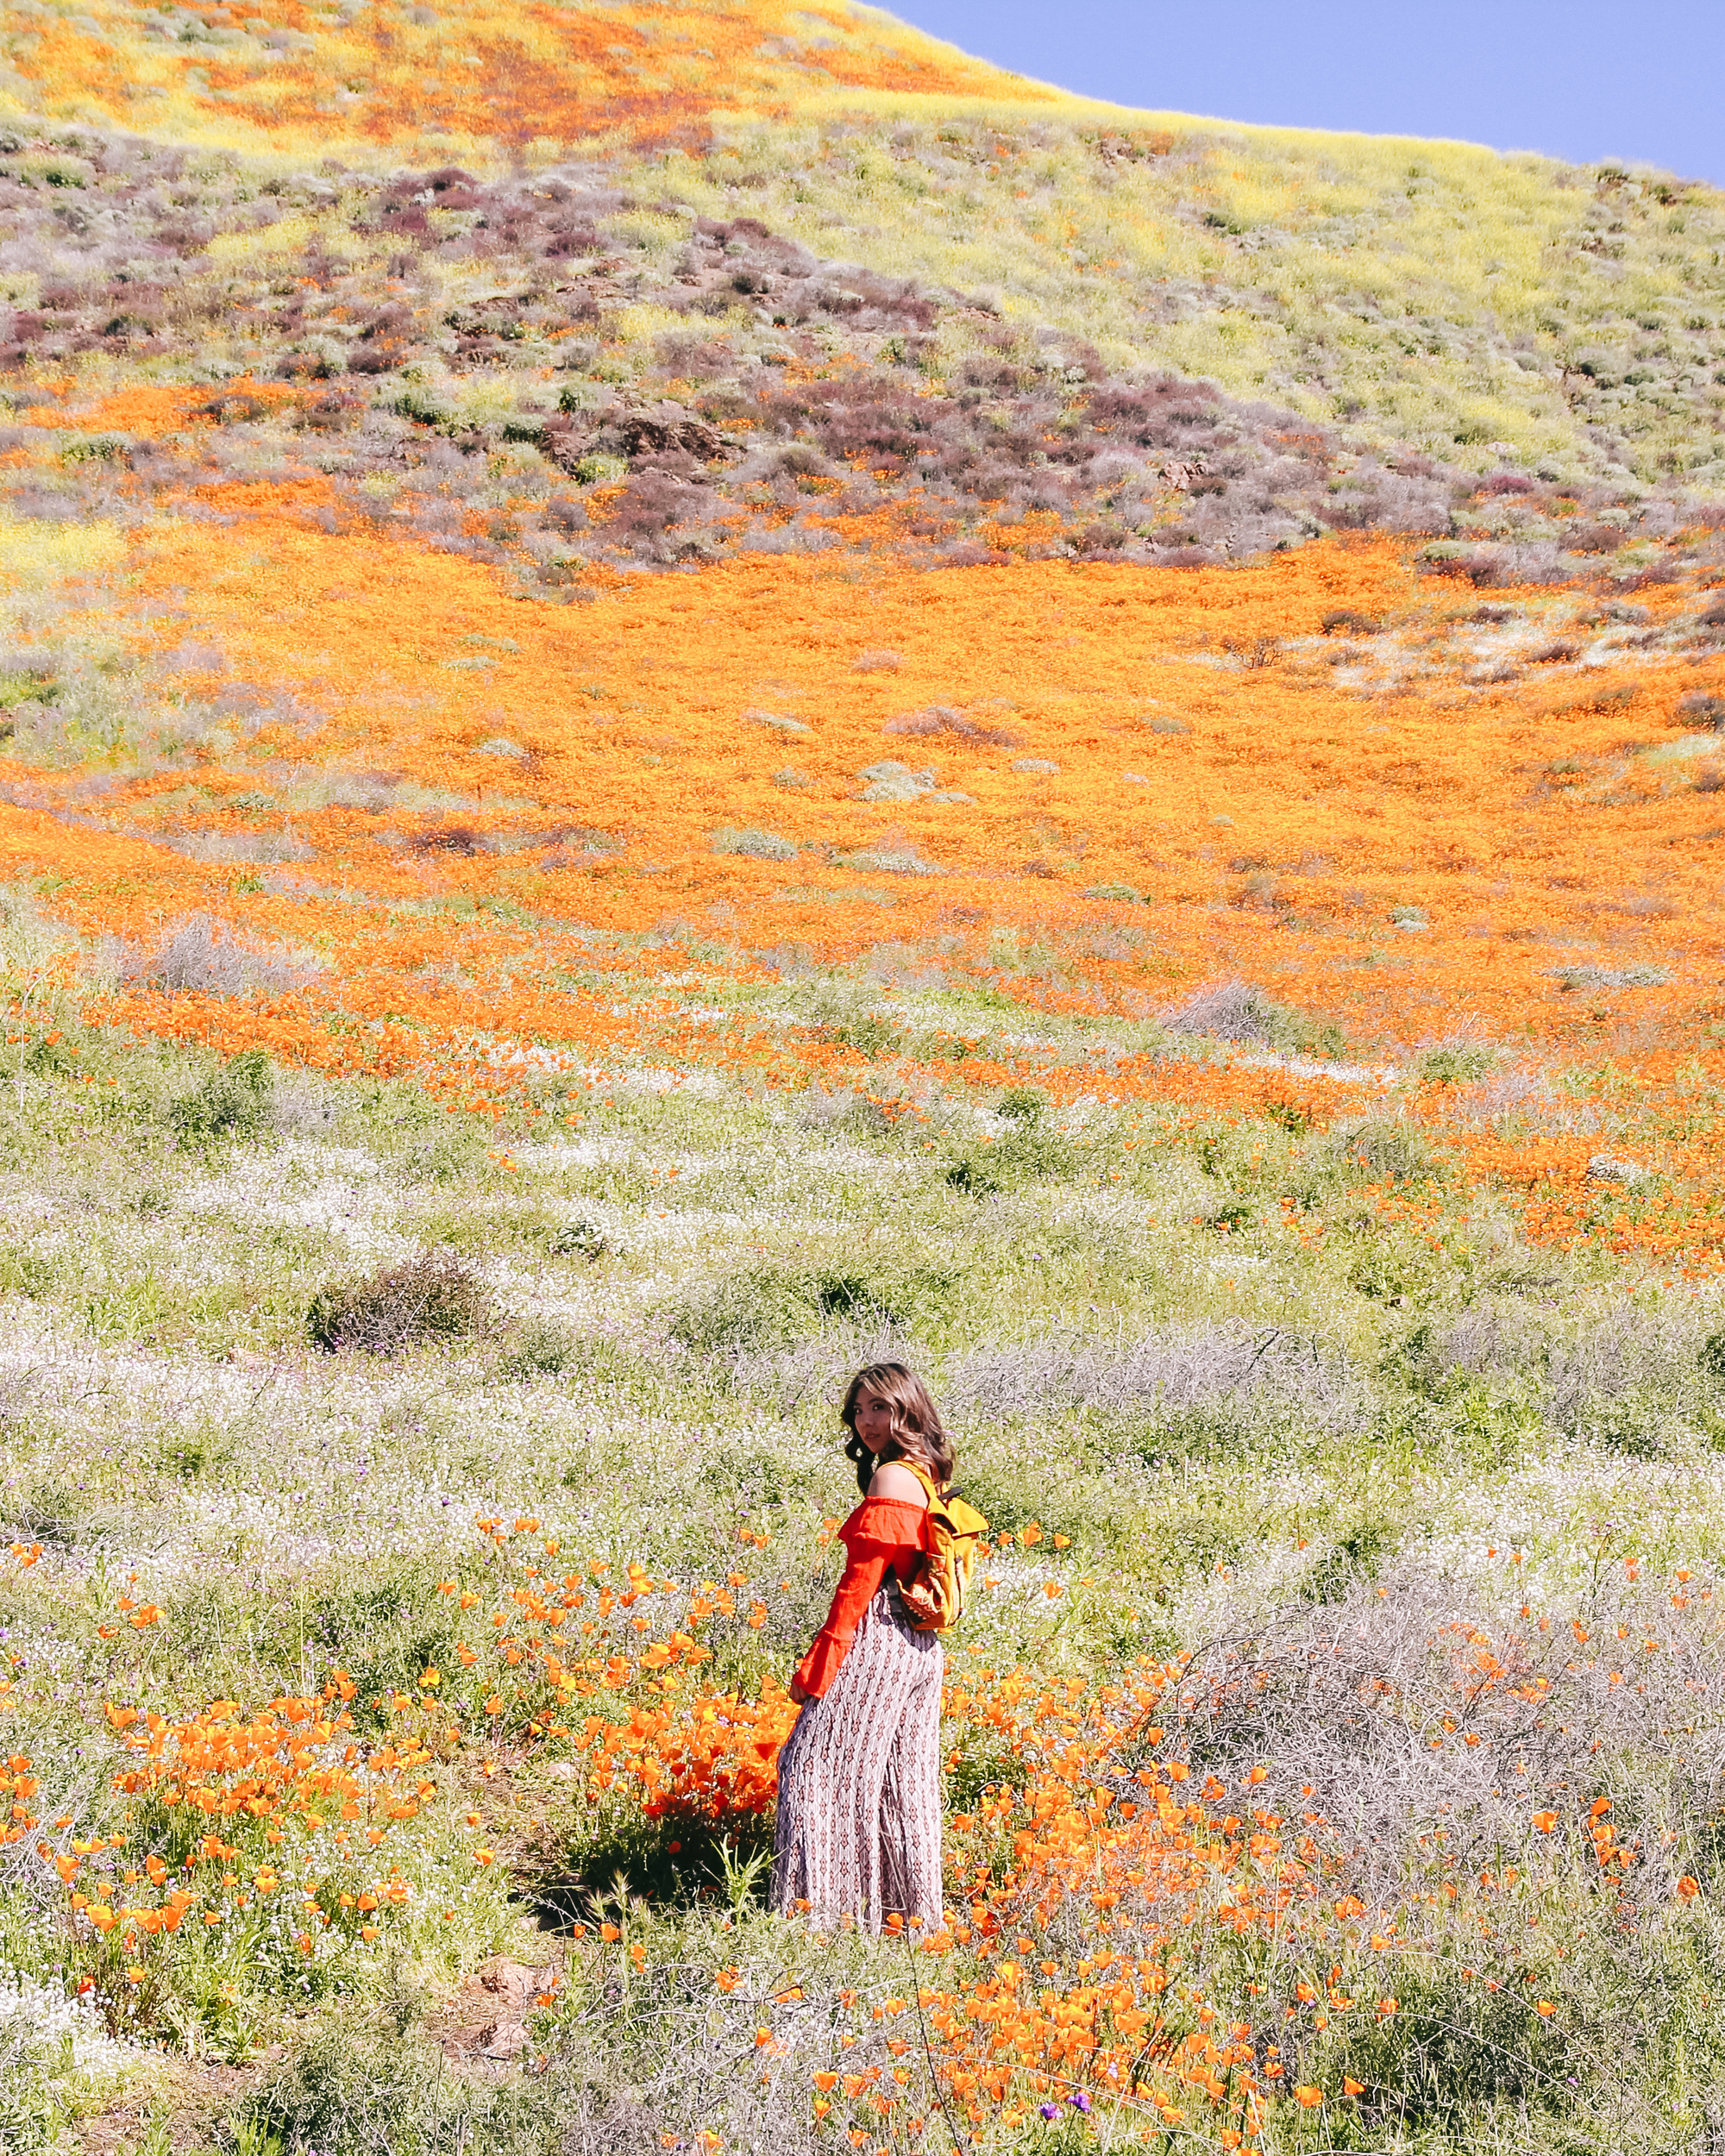 The Most Instagram Worthy Flower Fields - Walker Canyon Superbloom